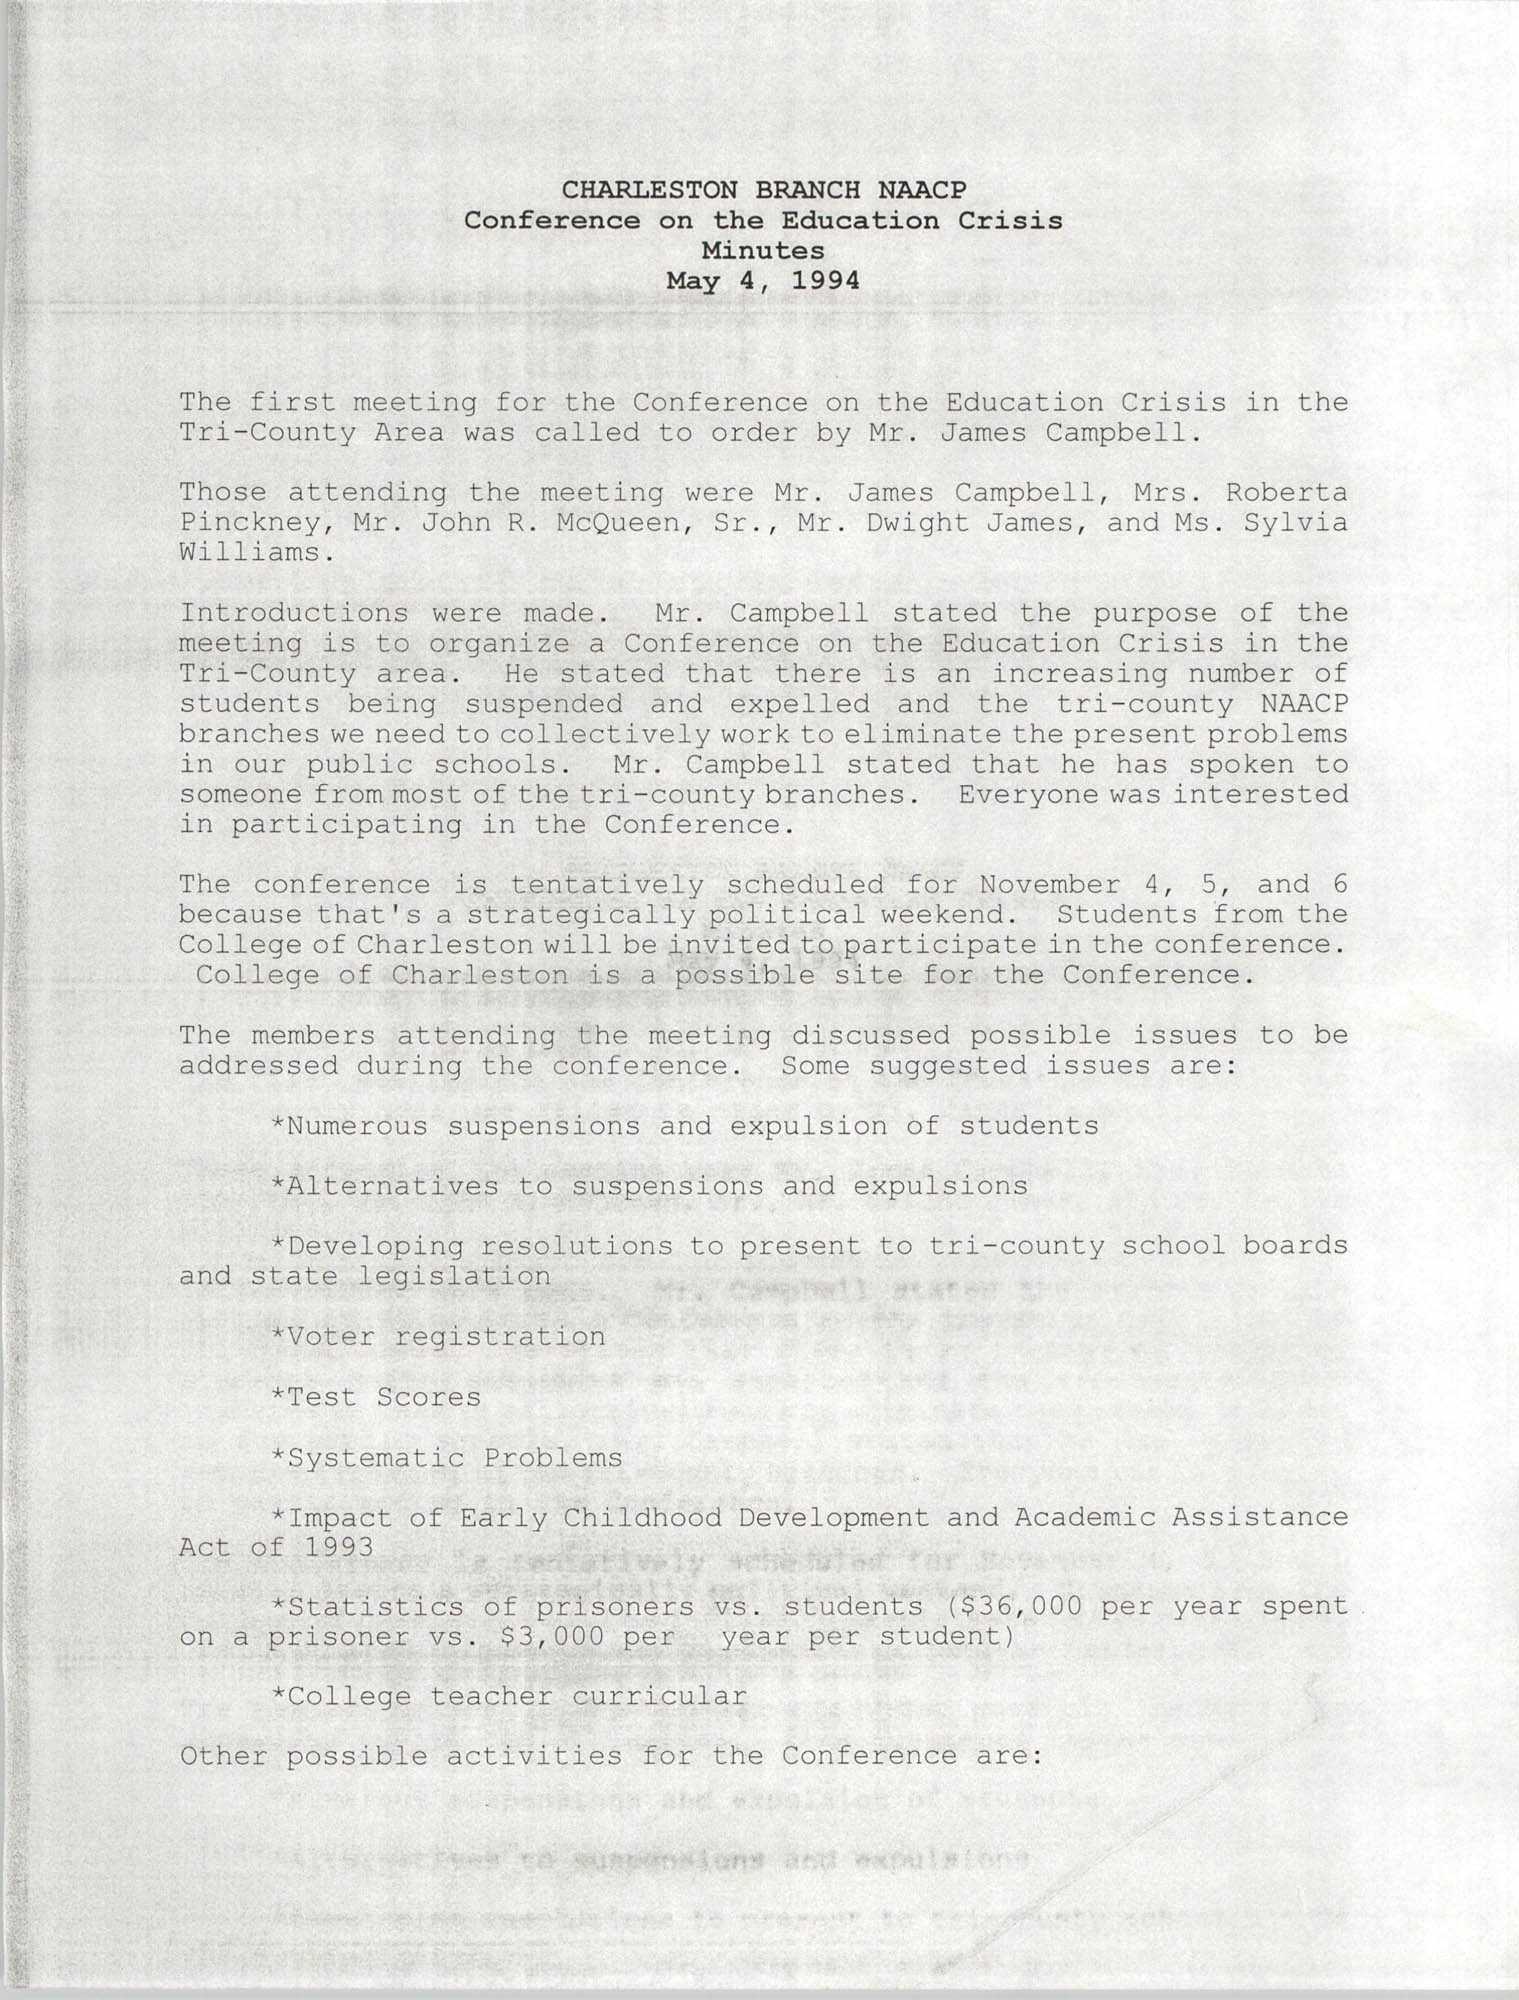 Charleston Branch of the NAACP Conference of the Education Crisis Minutes, May 4, 1994